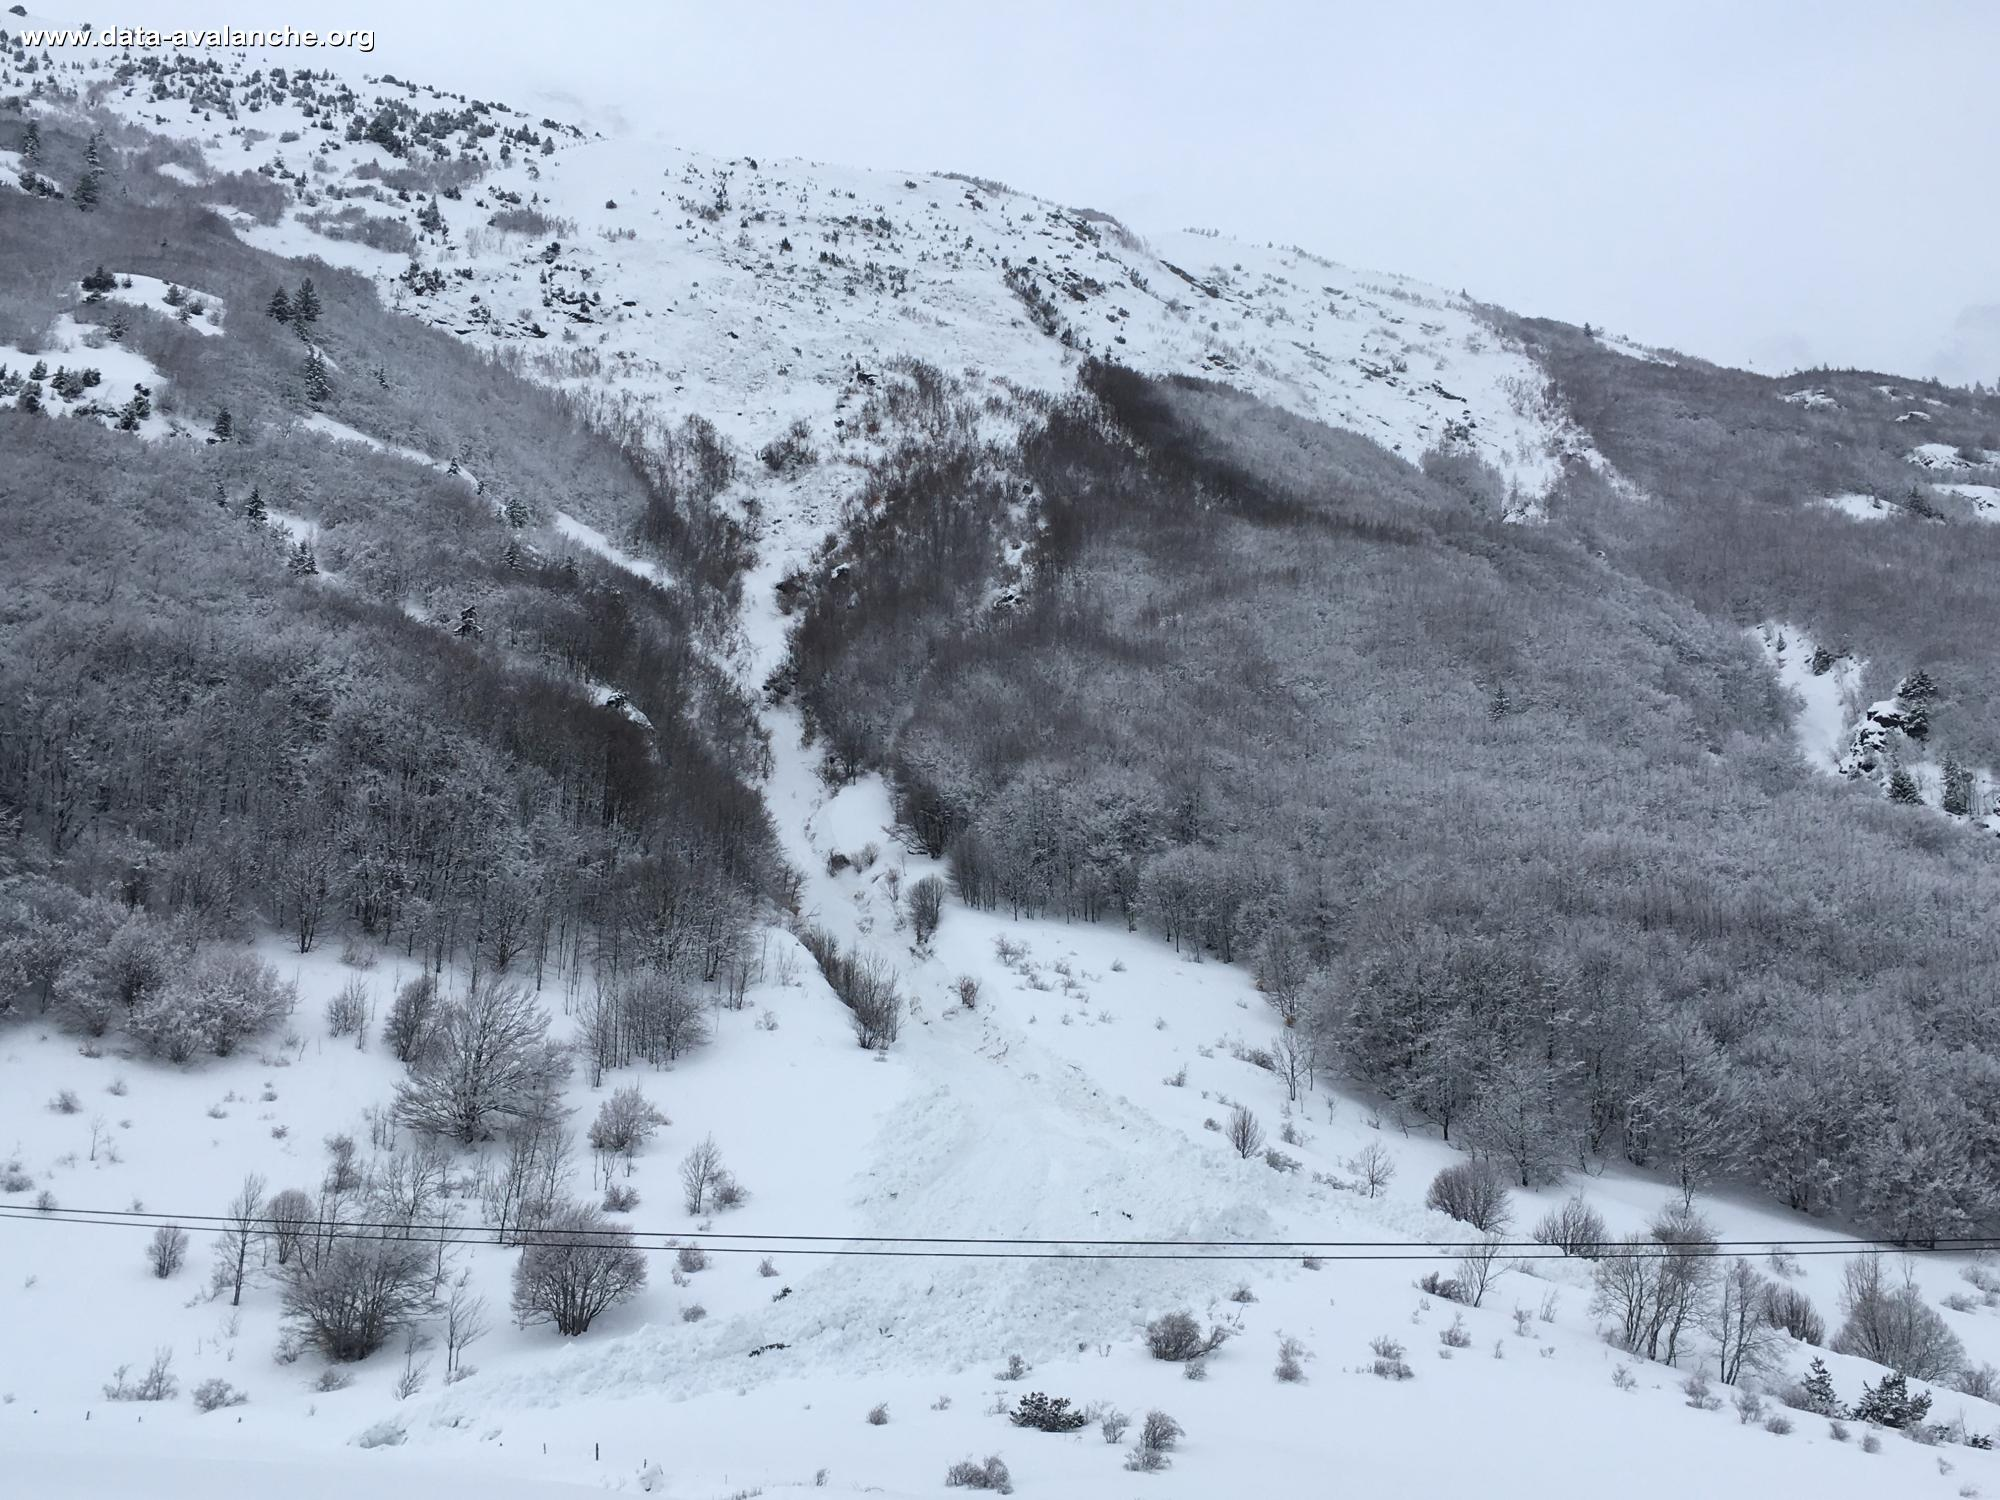 Avalanche Taillefer, secteur Col d'Ornon, Combe de la Lauze - Photo 1